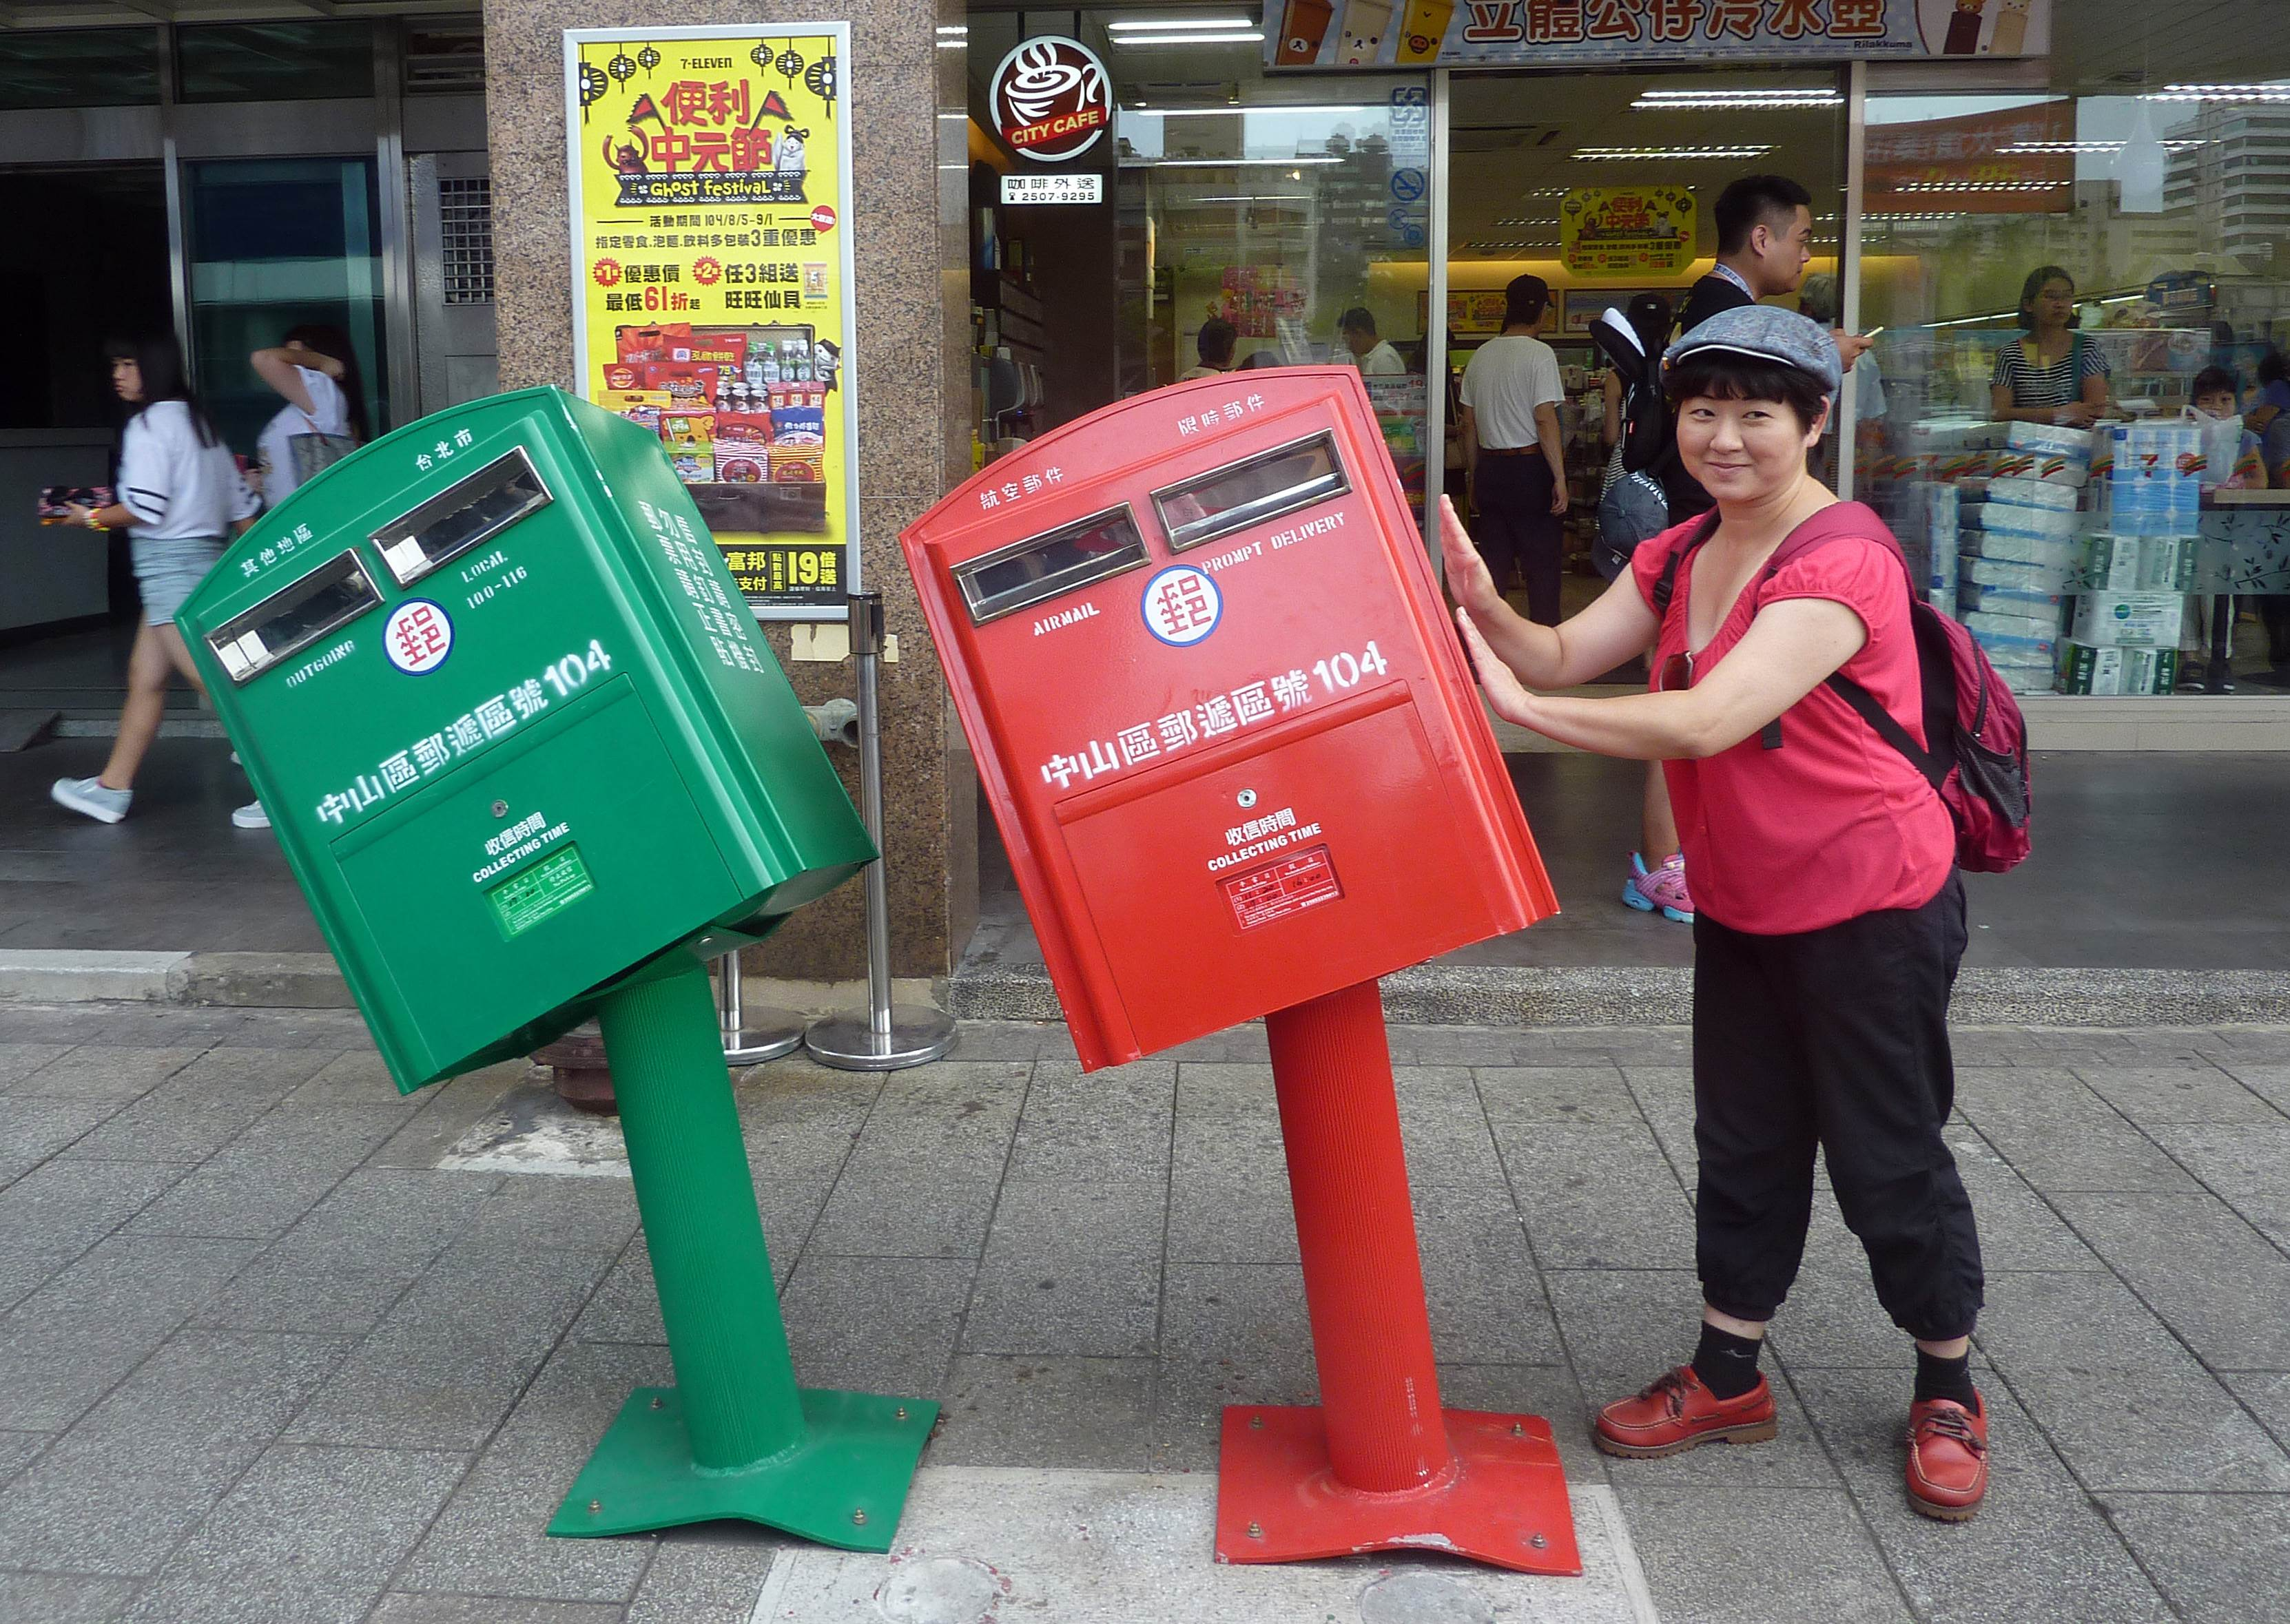 A woman poses next to two mailboxes along a street in Taipei on August 11, 2015 that were reportedly bent by strong winds brought by Typhoon Soudelor,which hit in the early hours of August 8 and was billed as the most powerful typhoon this year. The two iron mailboxes have become an unlikely attraction, drawing thousands of snap-happy visitors and have even become a backdrop to a wedding photo shoot. Photo: AFP